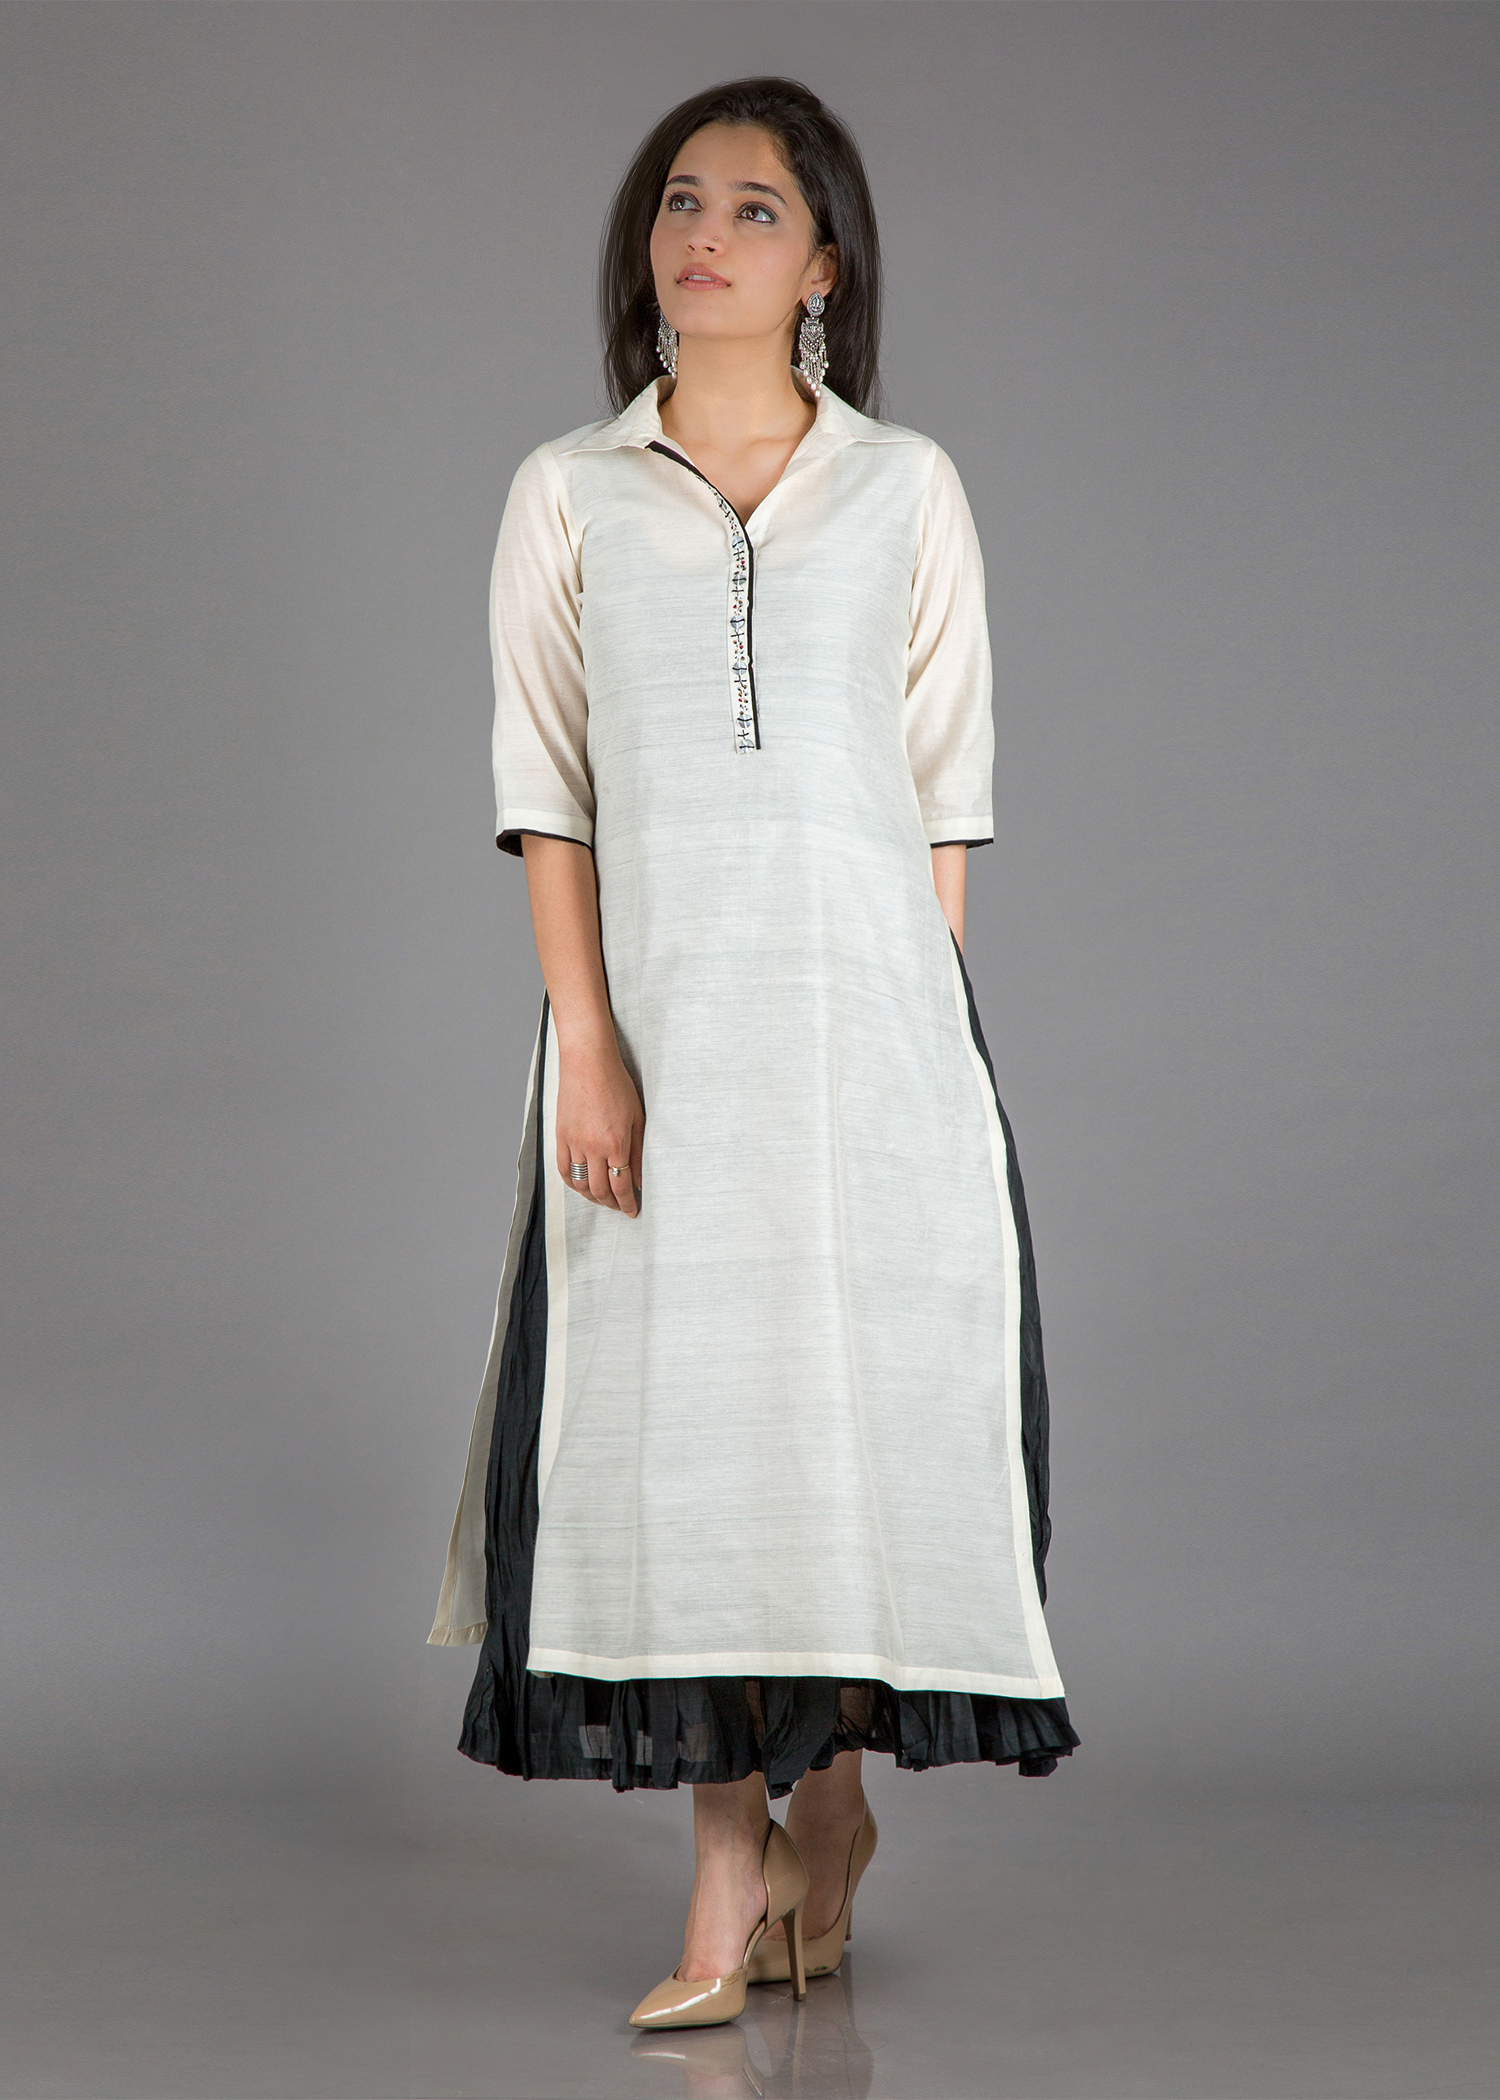 Ivory & Black Edit -  White Chanderi Kurta with Crushed Black Chanderi Kalidaar